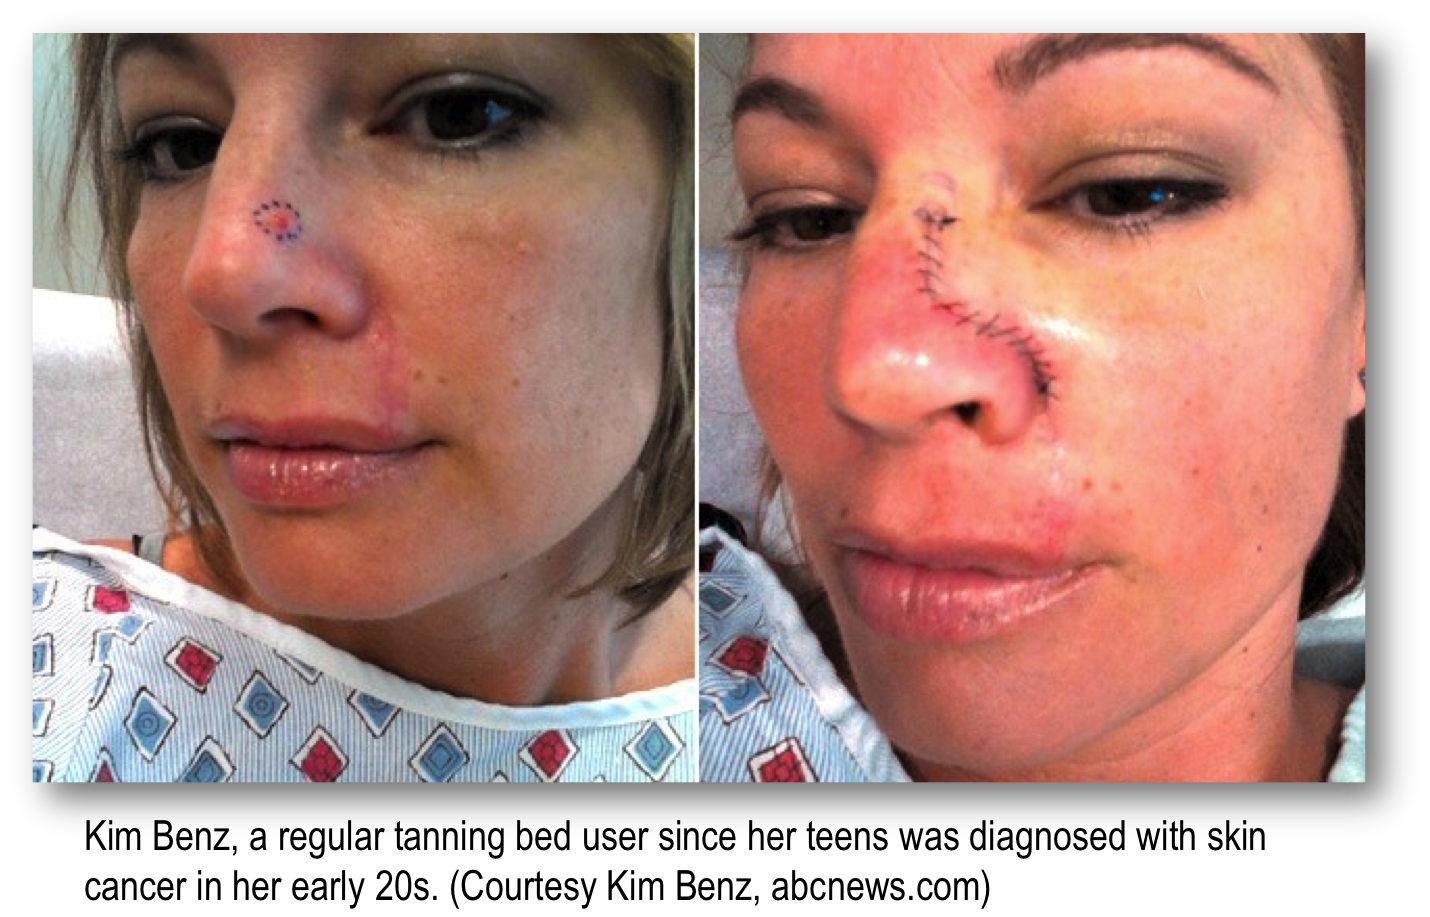 Basal cell carcinoma on nose of a young woman who used